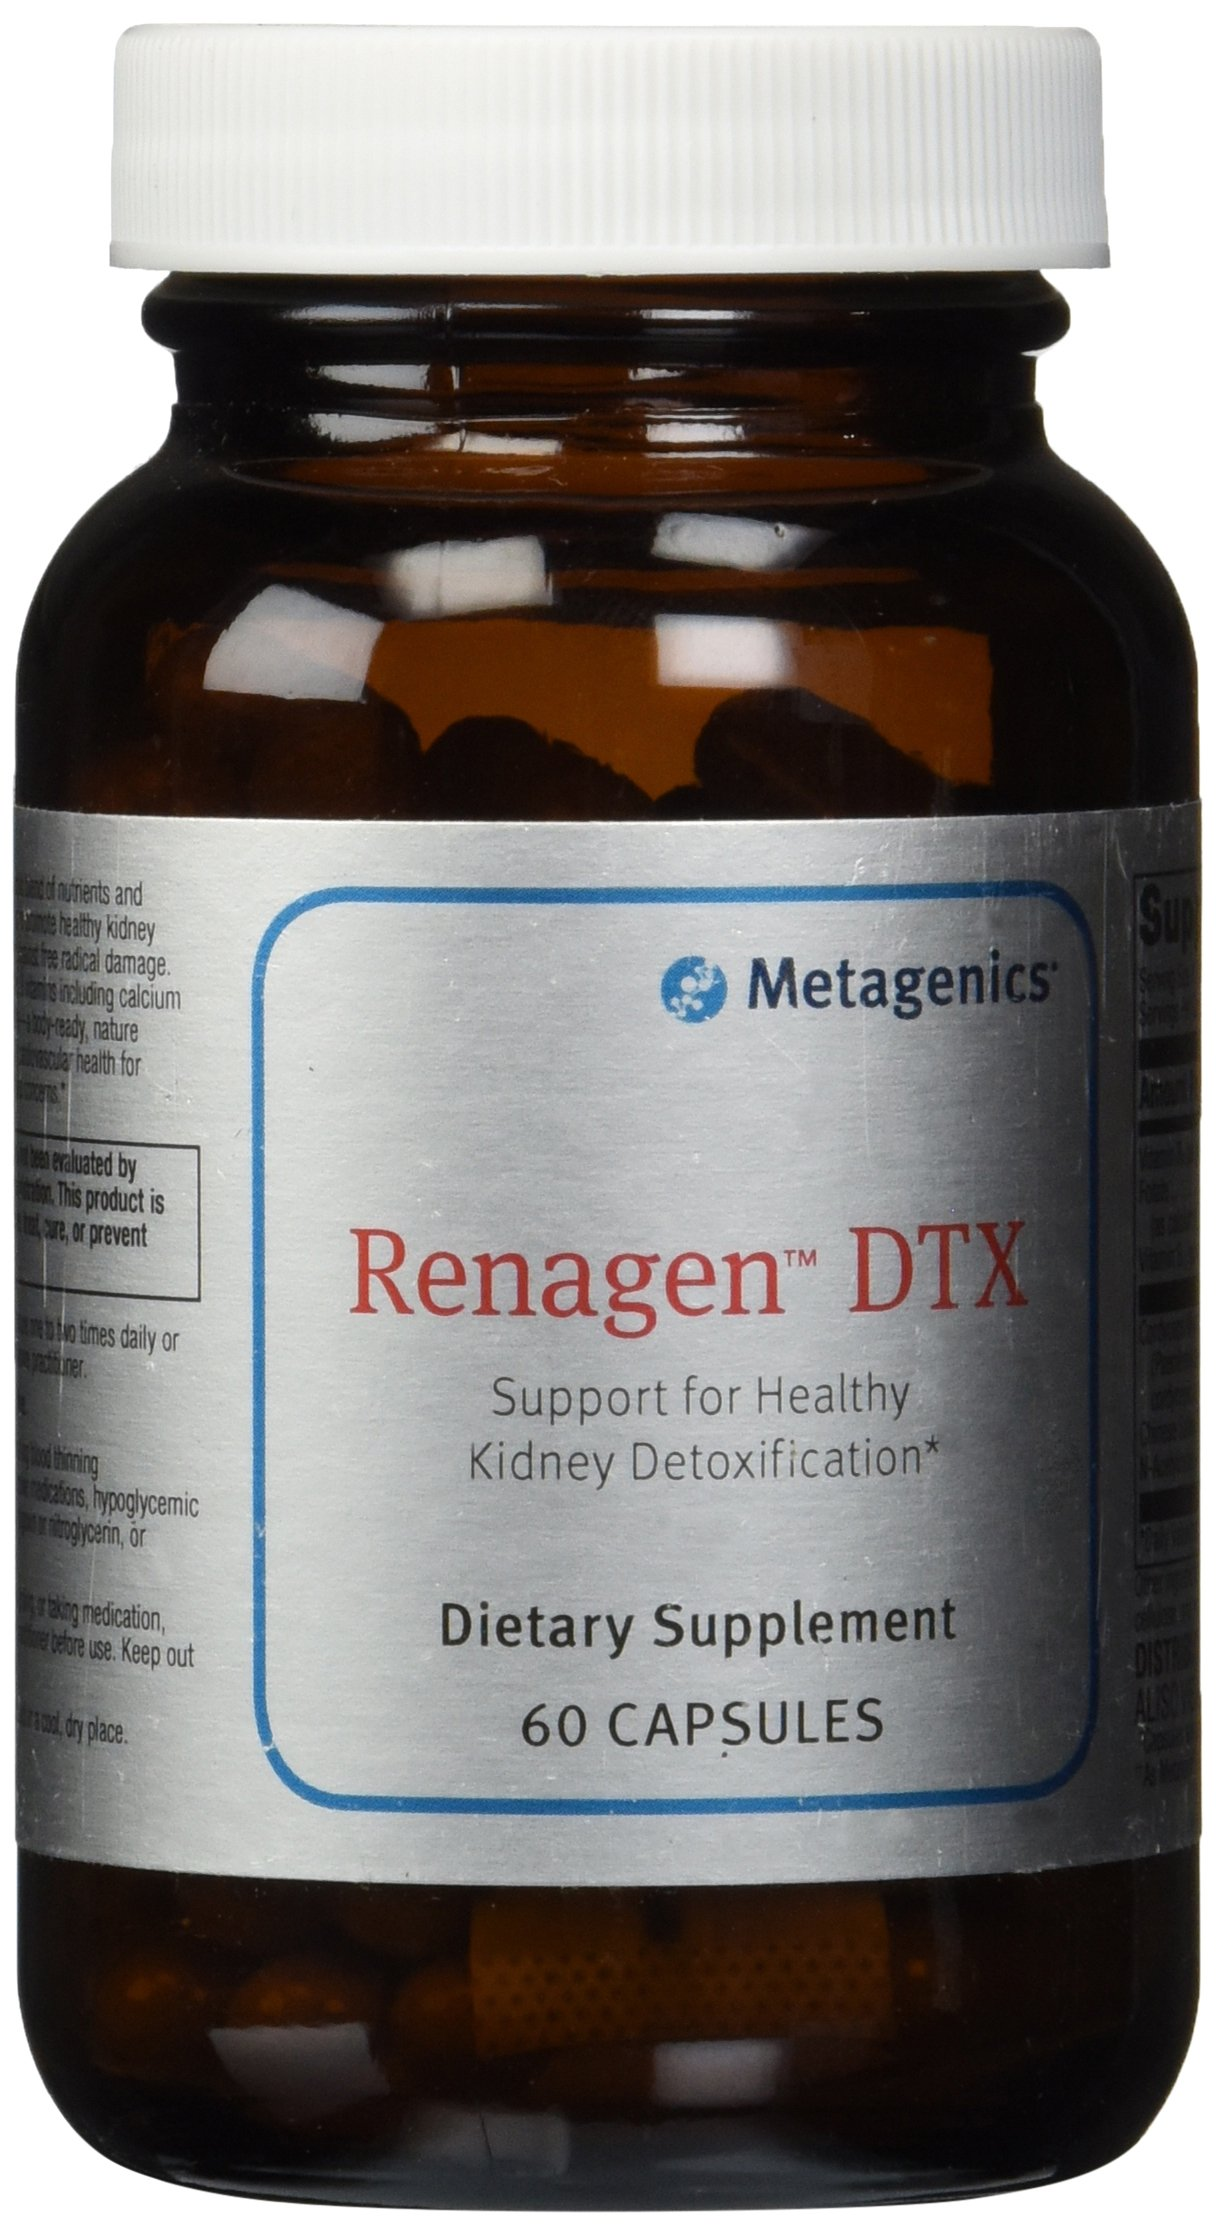 Metagenics Renagen DTX Capsules, 60 Count